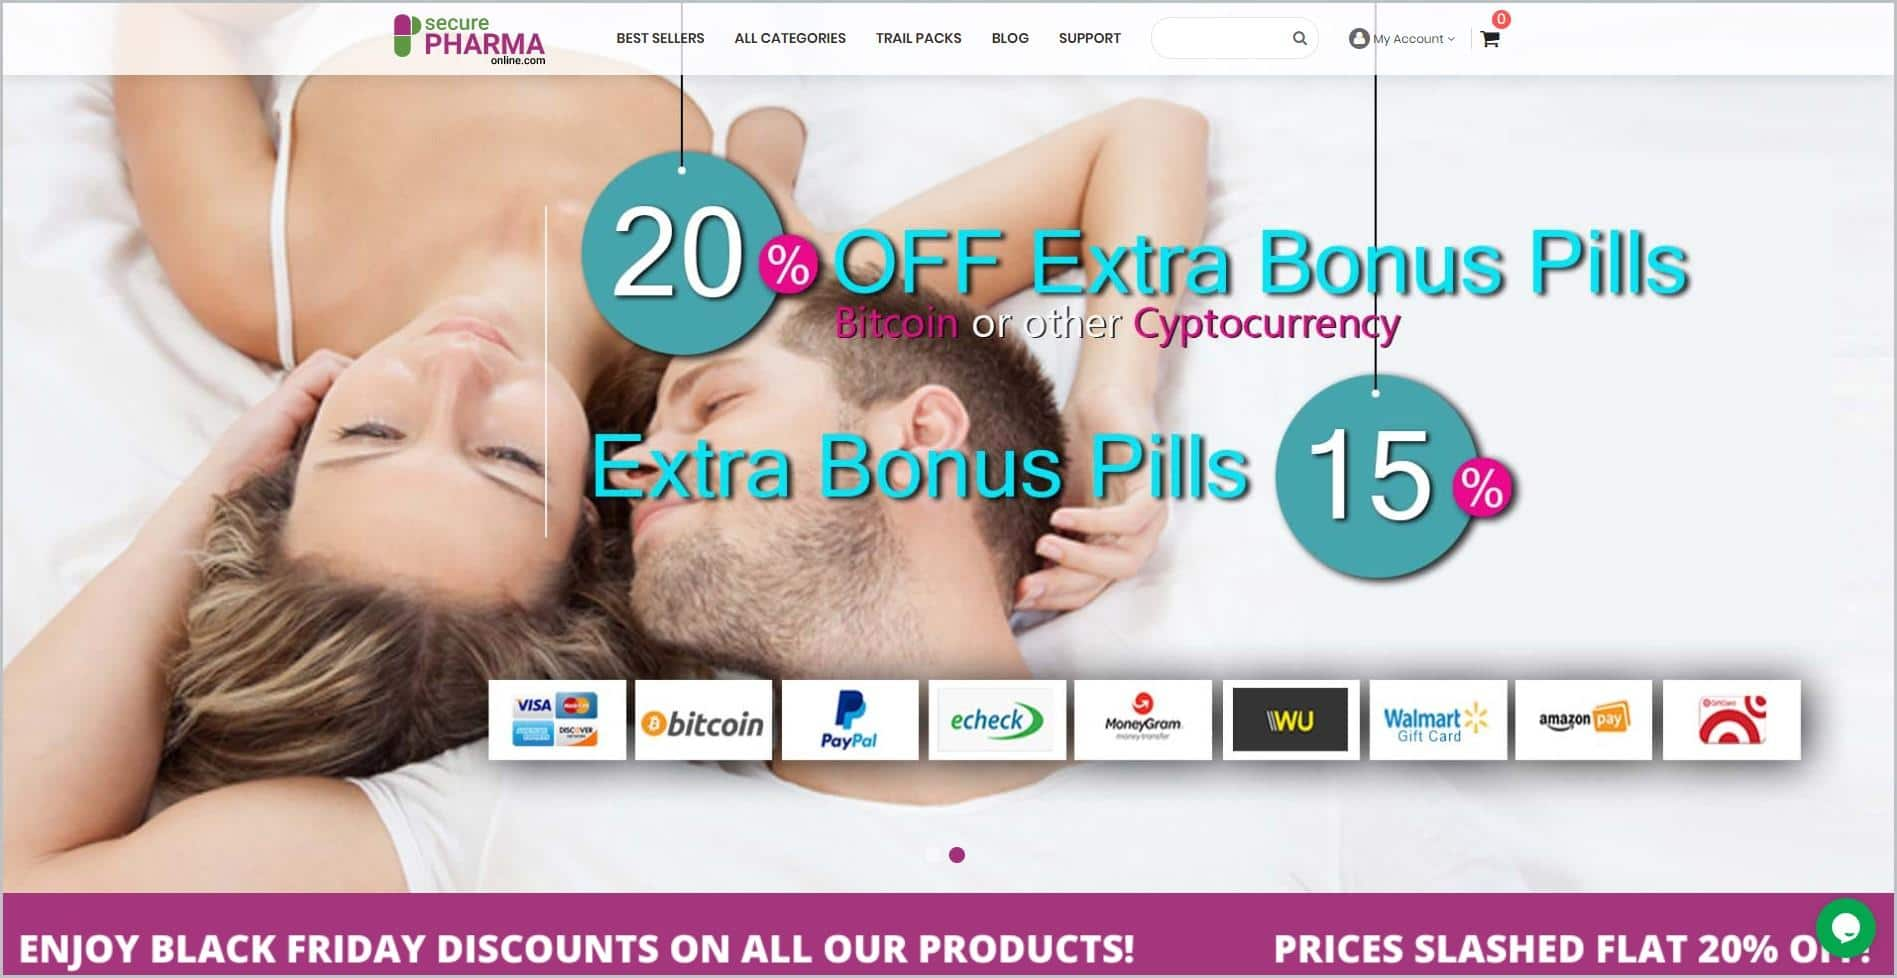 screenshot of SecurePharamonline homepage with white header with the website's name with main navigation bar, it showcases a top view image of a man and woman lying down